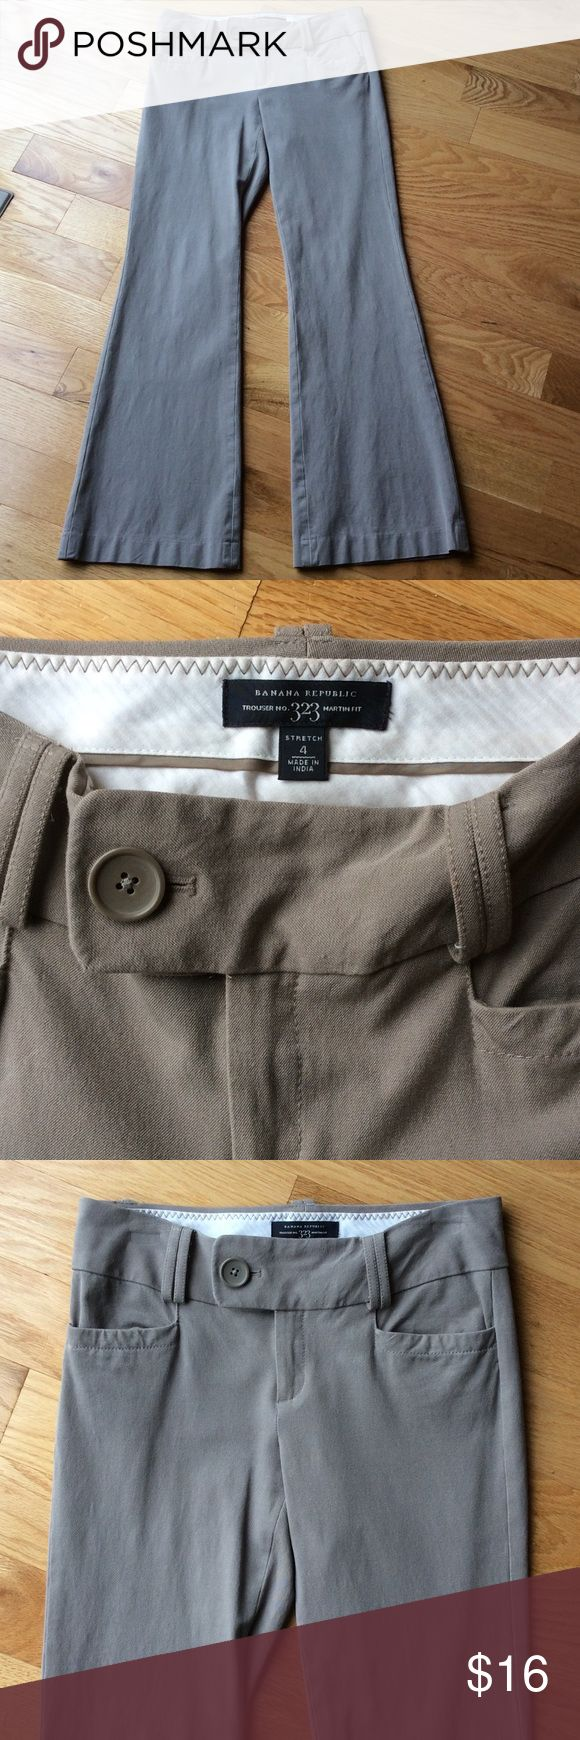 Banana Republic Trousers Martin Fit 323 Style Banana Republic Trousers taupe / beige color size 4 stretch. Good condition. Banana Republic Pants Trousers